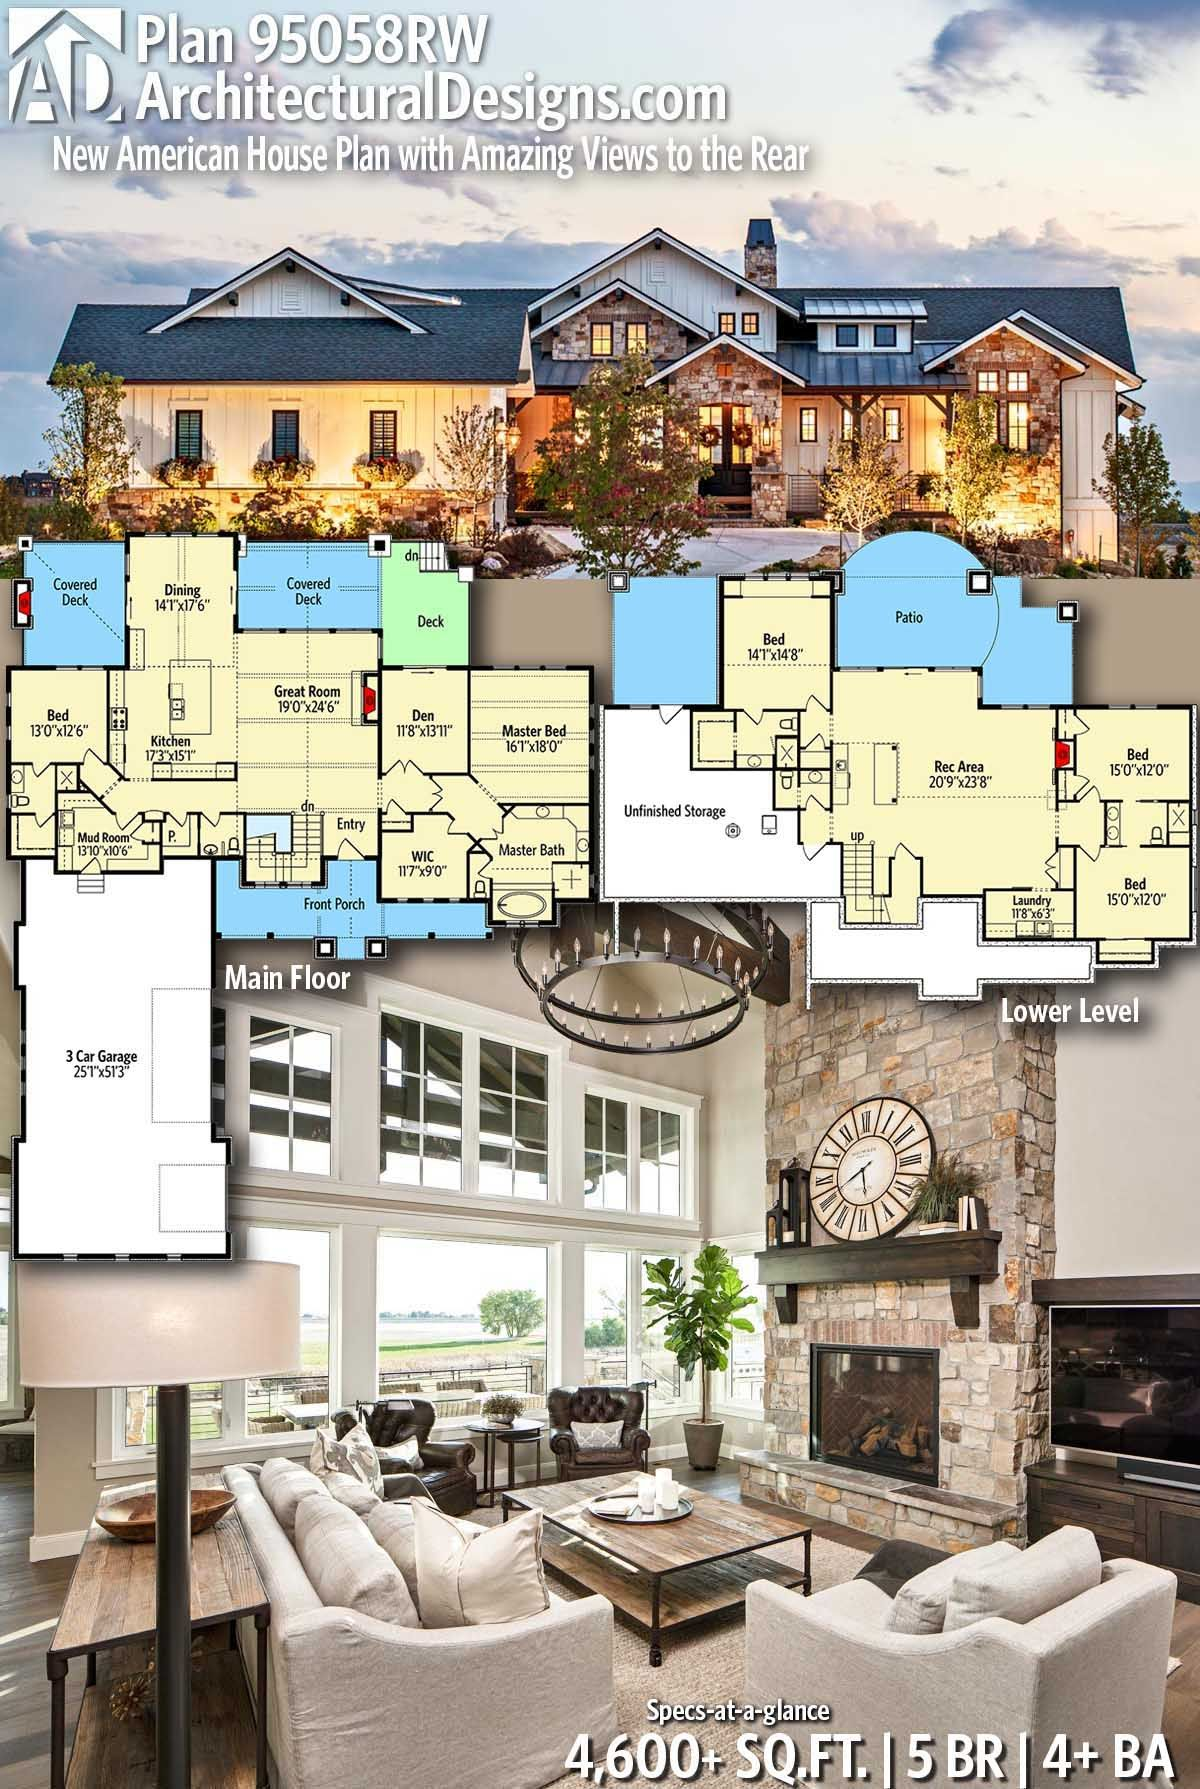 Plan 95058rw New American House Plan With Amazing Views To The Rear House Plans Bedroom House Plans Dream House Plans